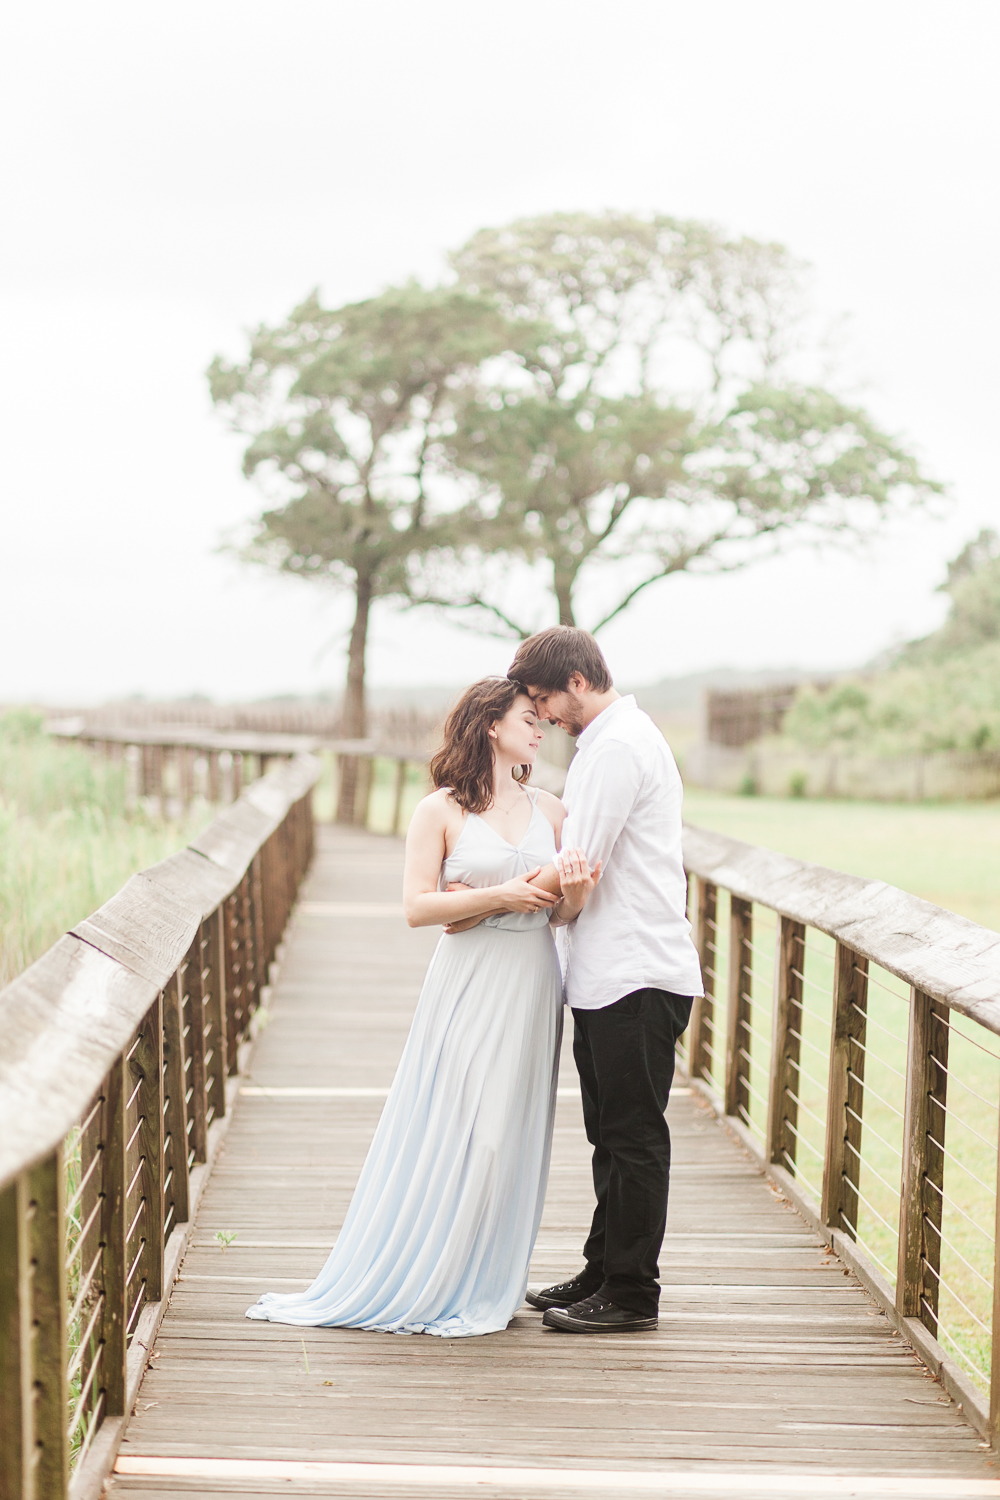 wilmingtonweddingphotographer-8.jpg